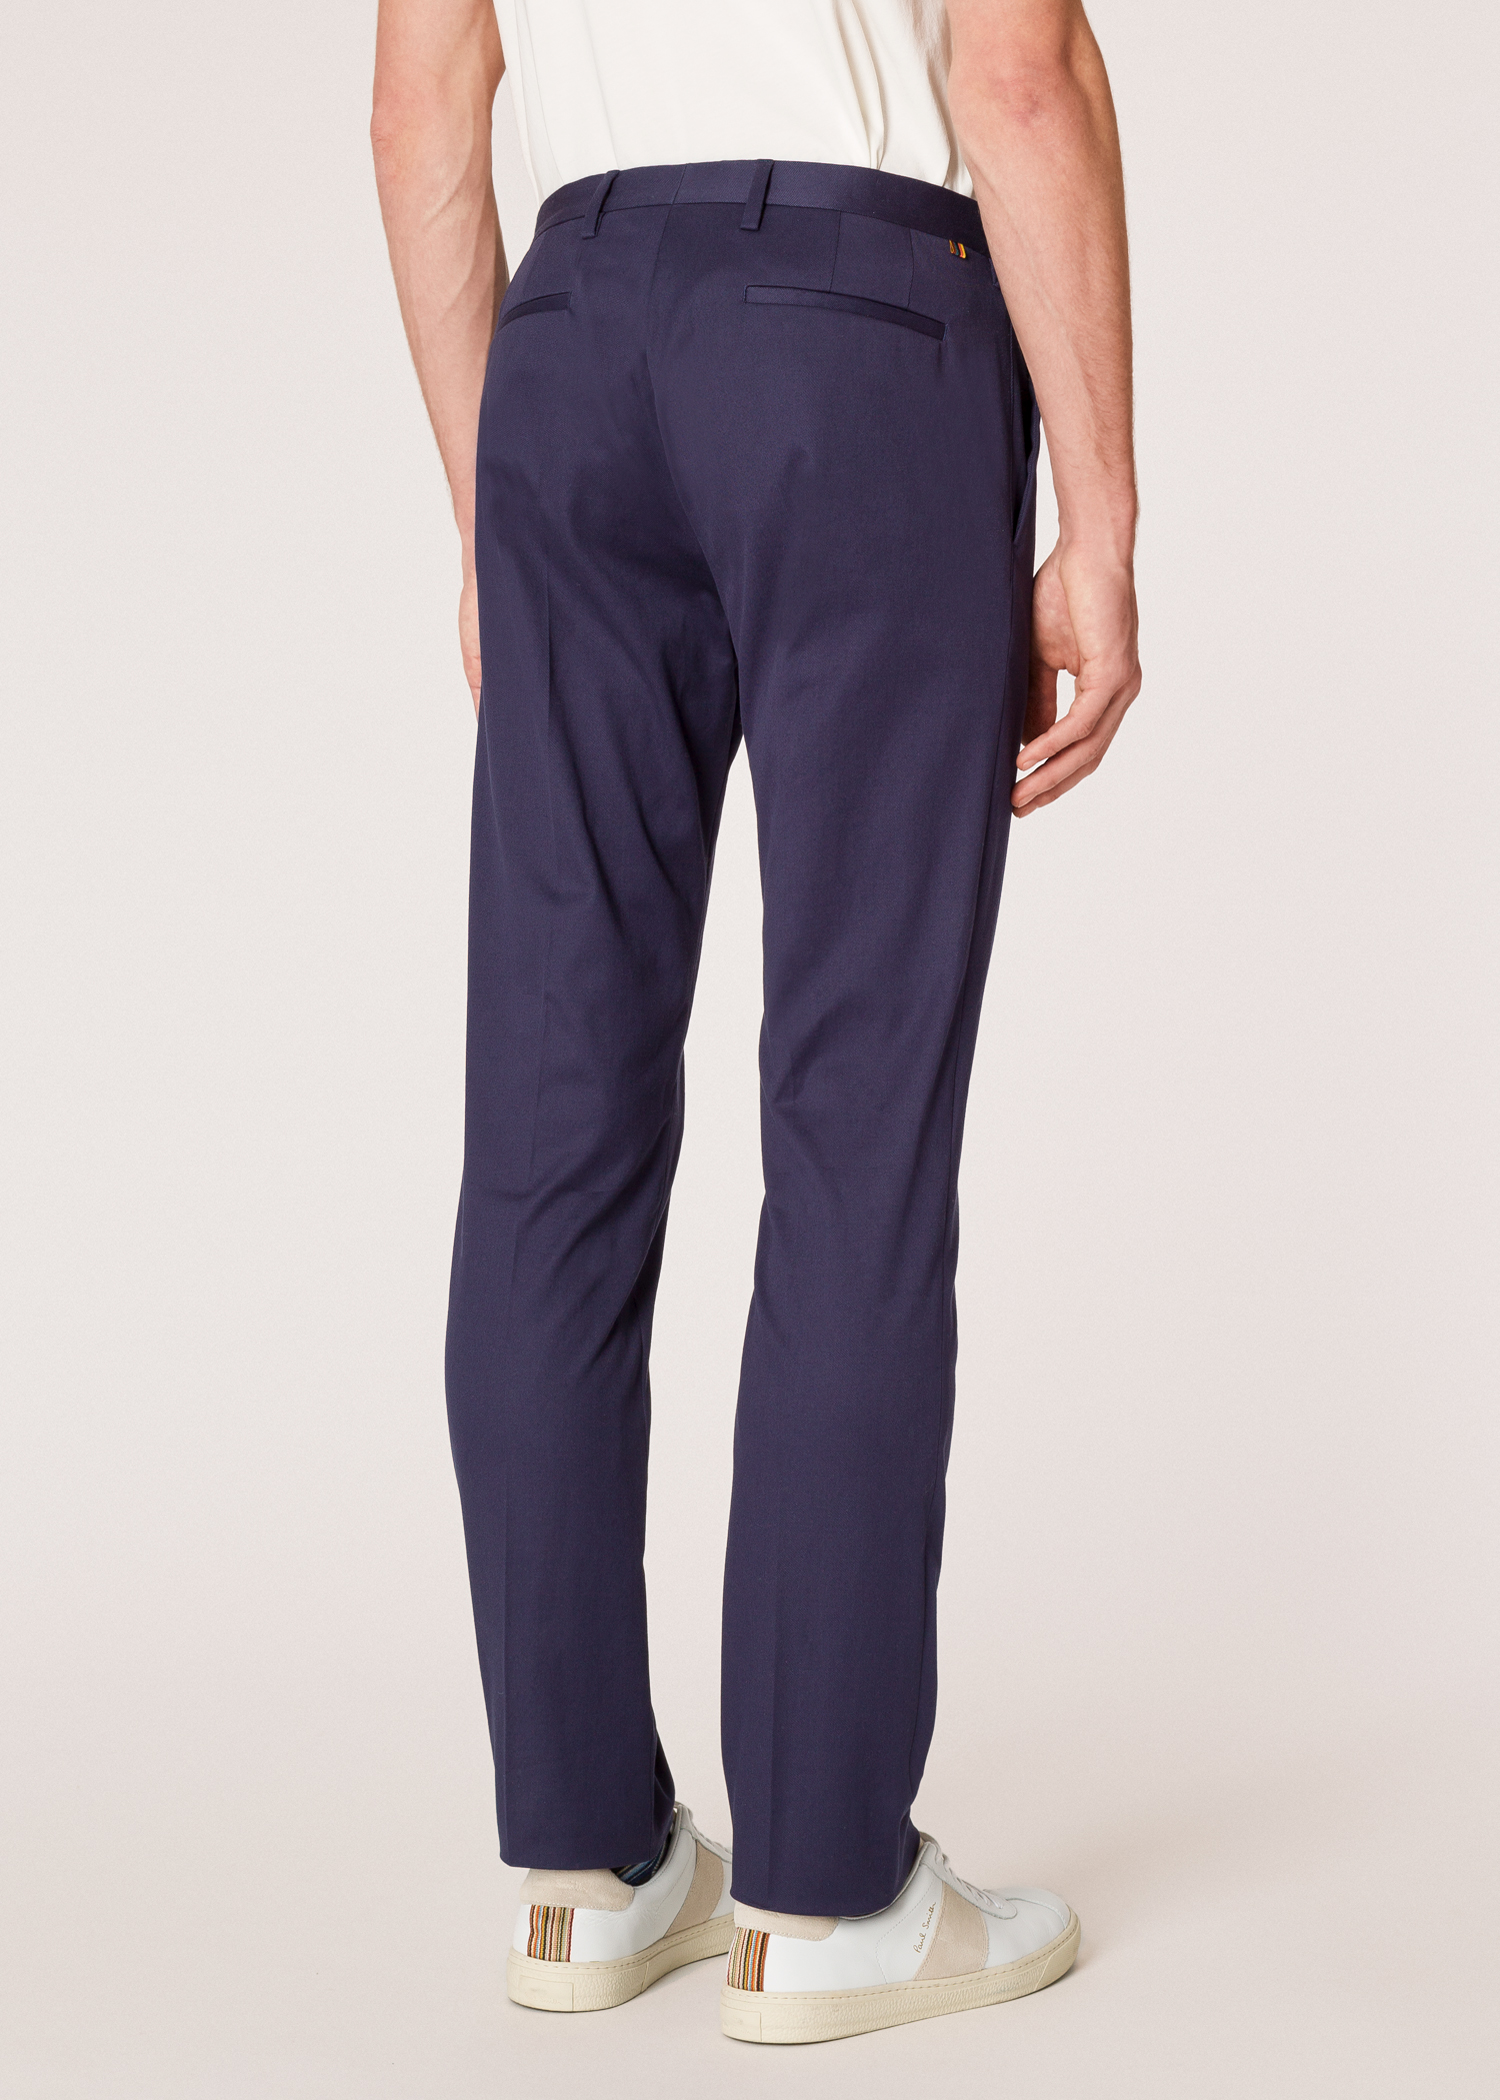 Men S Slim Fit Navy Stretch Cotton Chinos Paul Smith